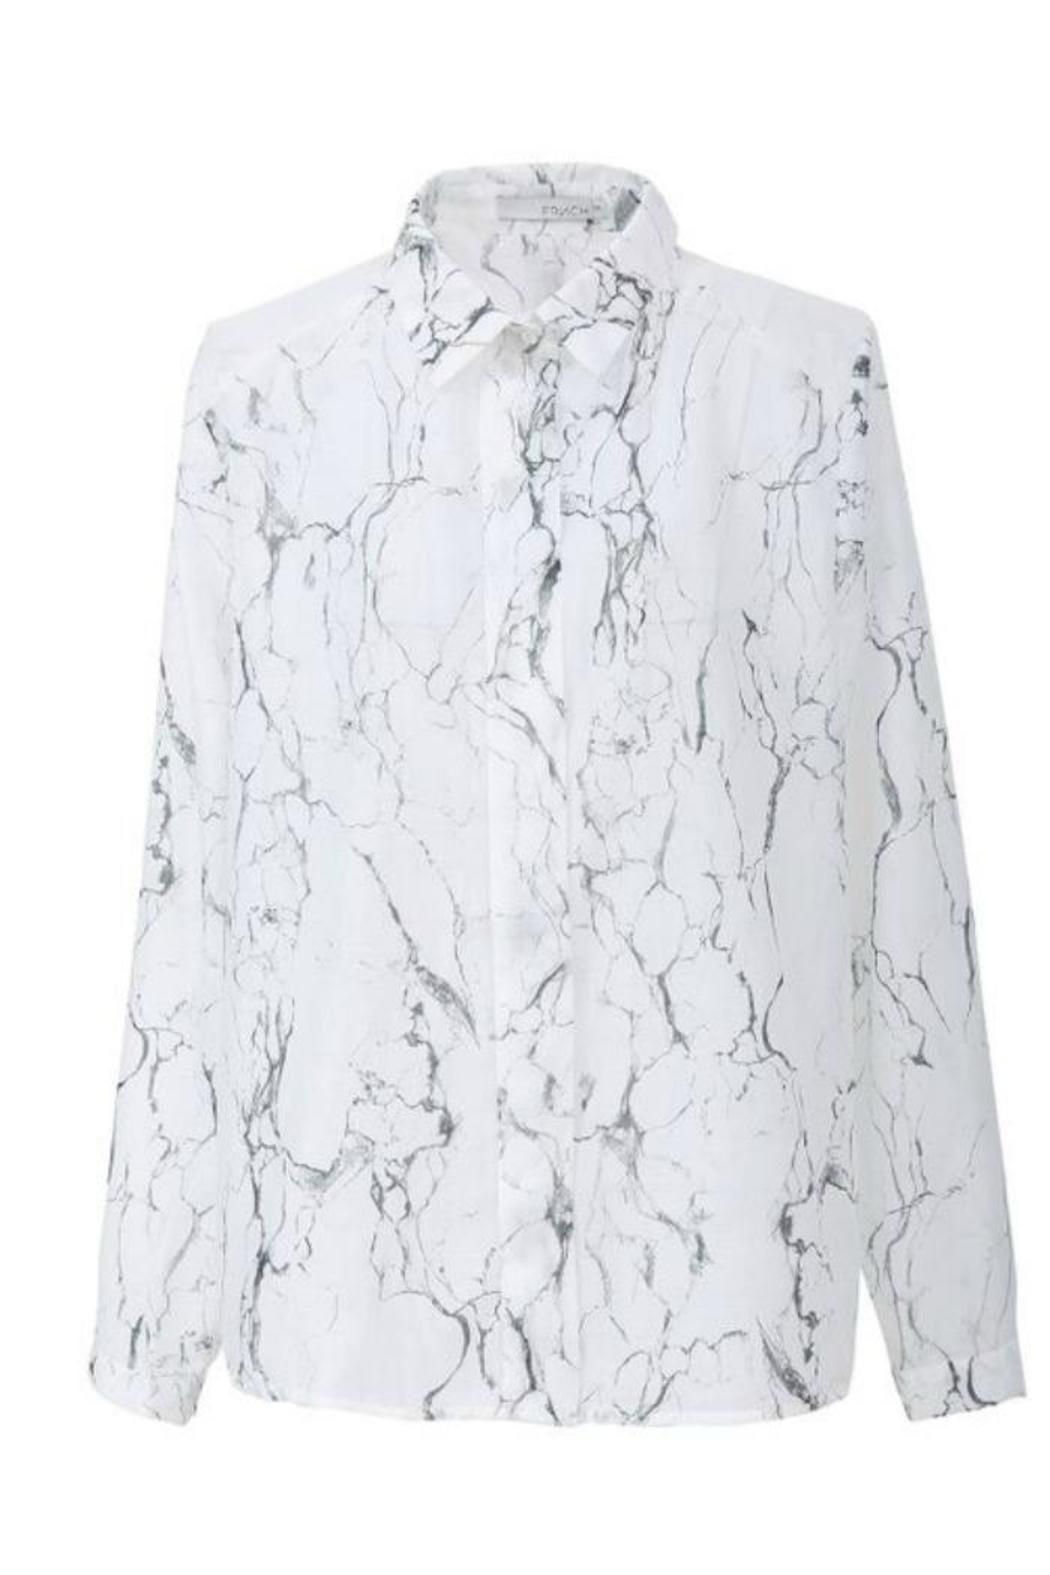 FRNCH Marble Print Shirt - Front Cropped Image